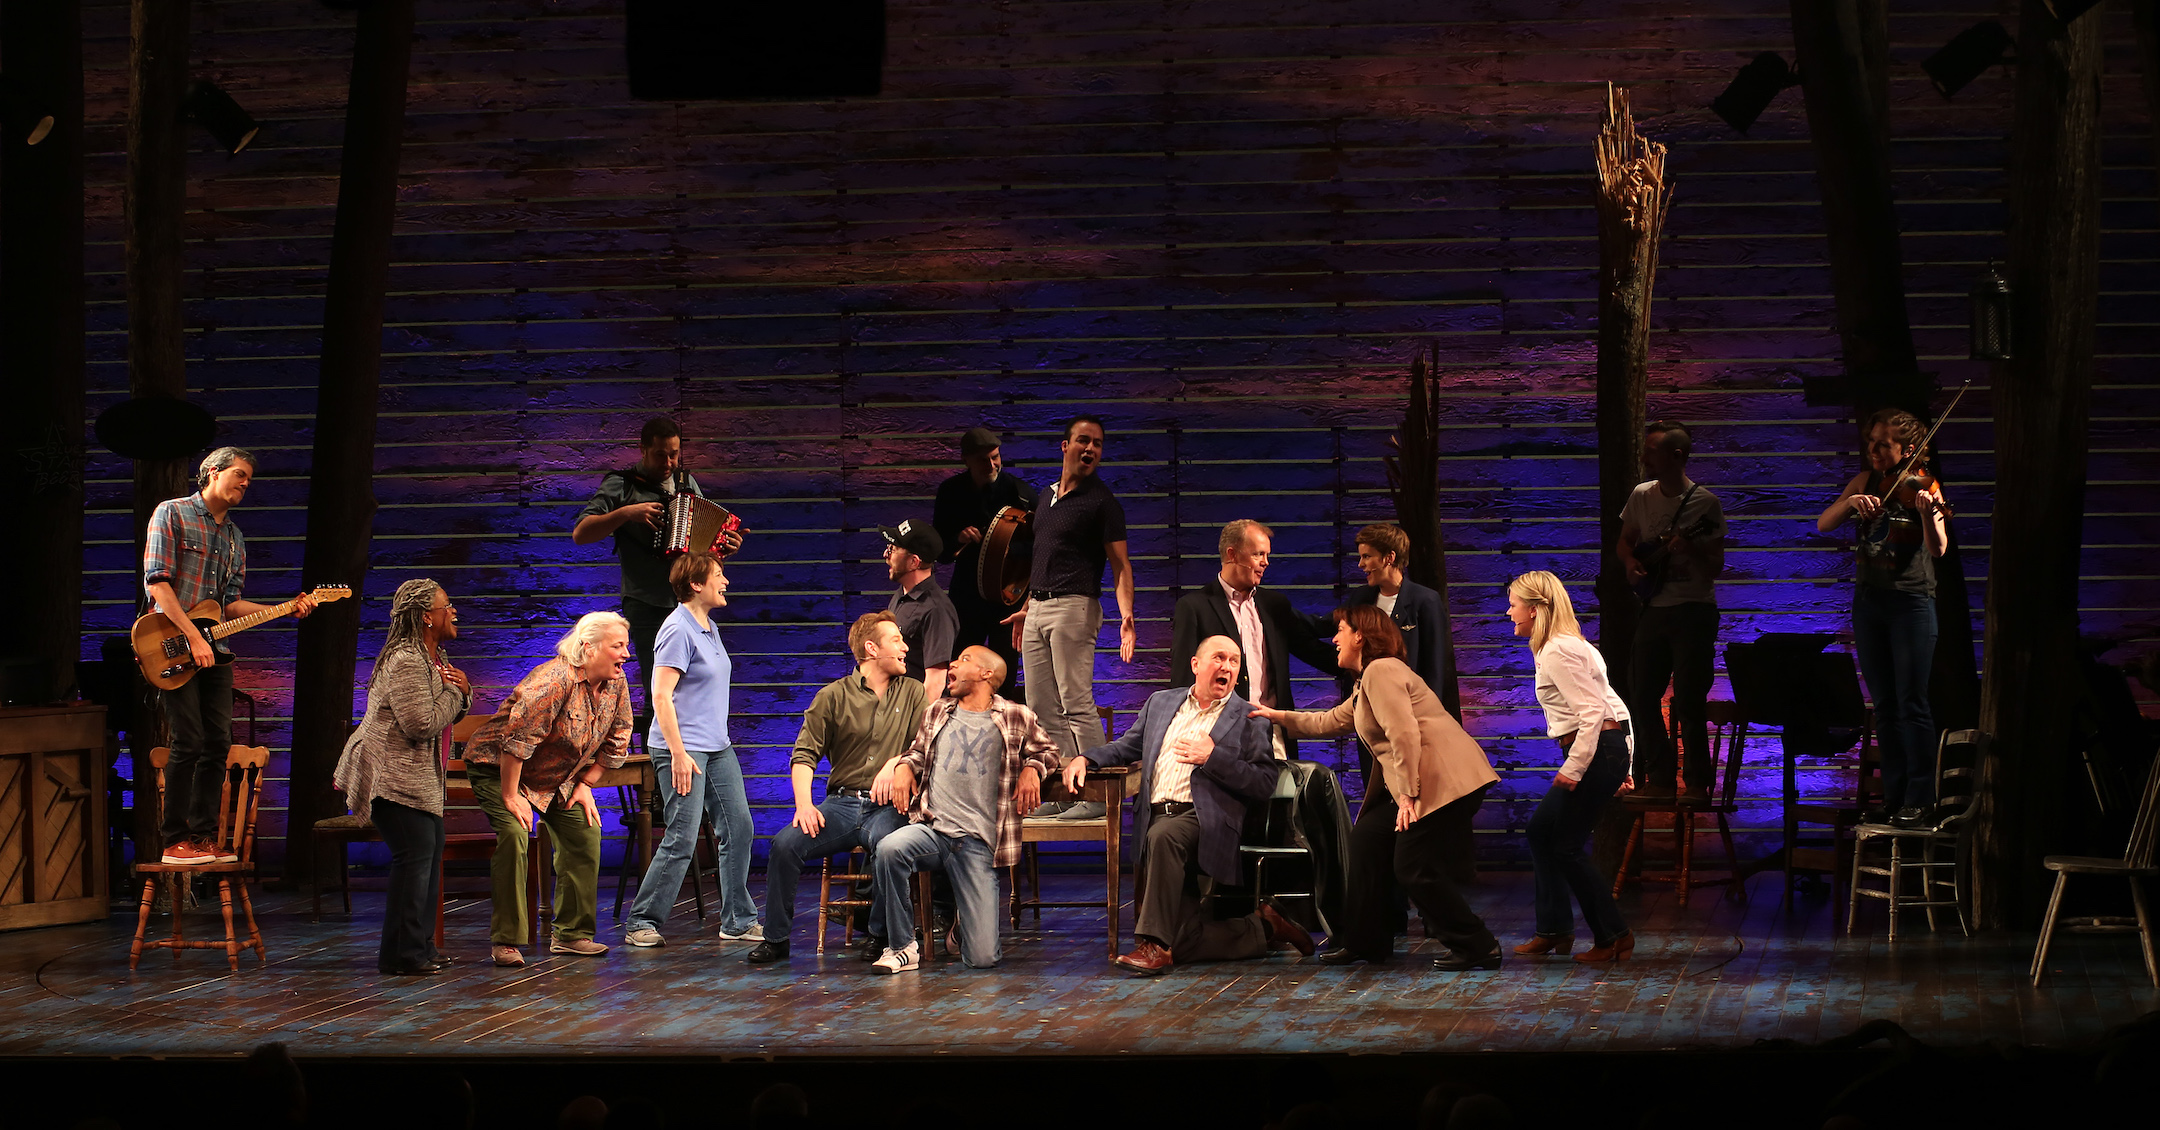 """The cast during the """"Come From Away"""" Broadway opening night curtain call at the Gerald Schoenfeld Theatre in New York City, March 12, 2017. (Photo/JTA-Walter McBride-WireImage-Getty Images)"""